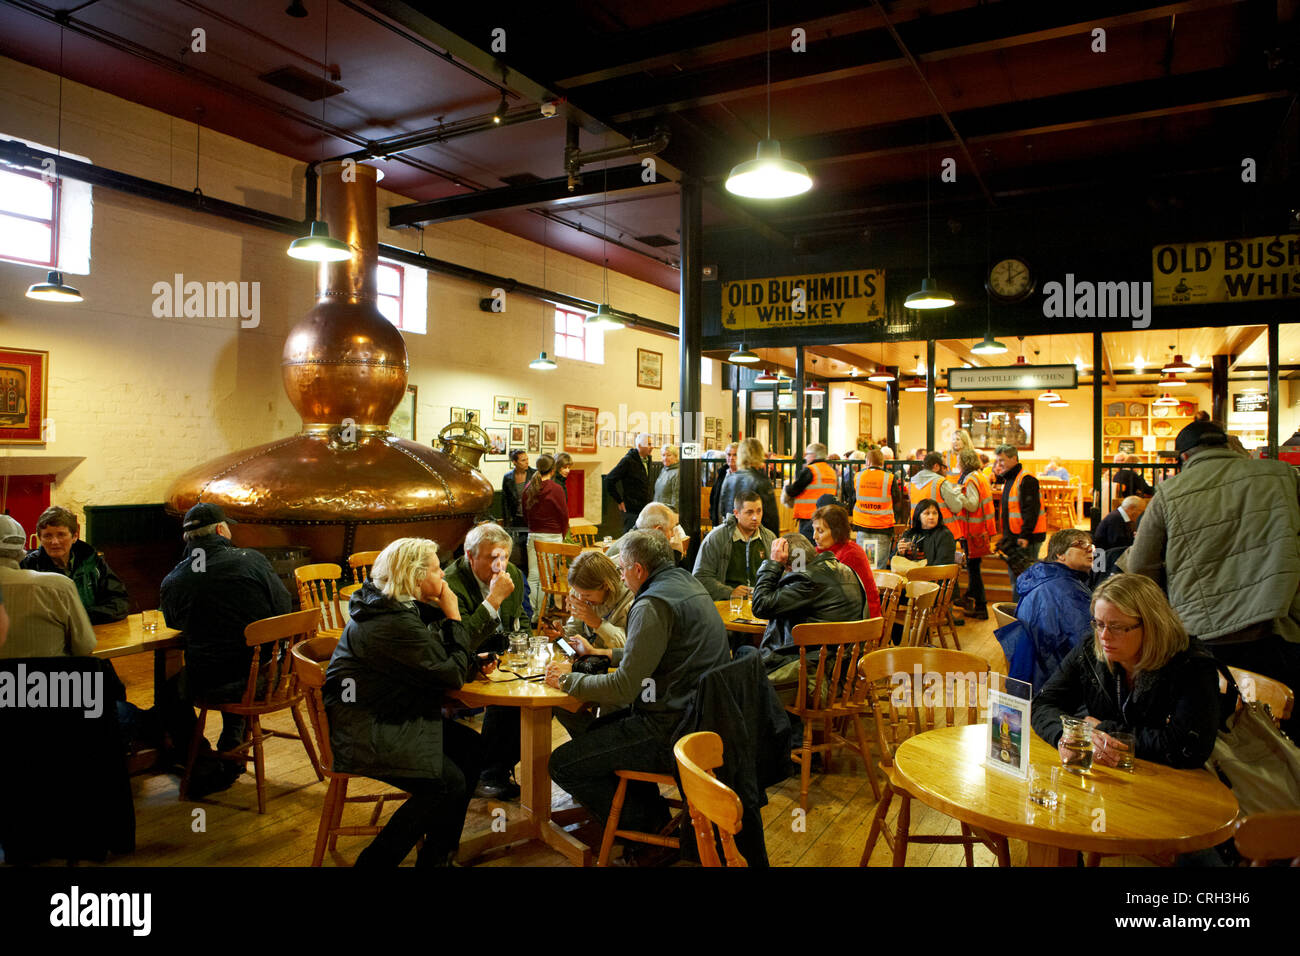 the restaurant kitchen cafe and bar old bushmills distillery county antrim northern ireland uk - Stock Image